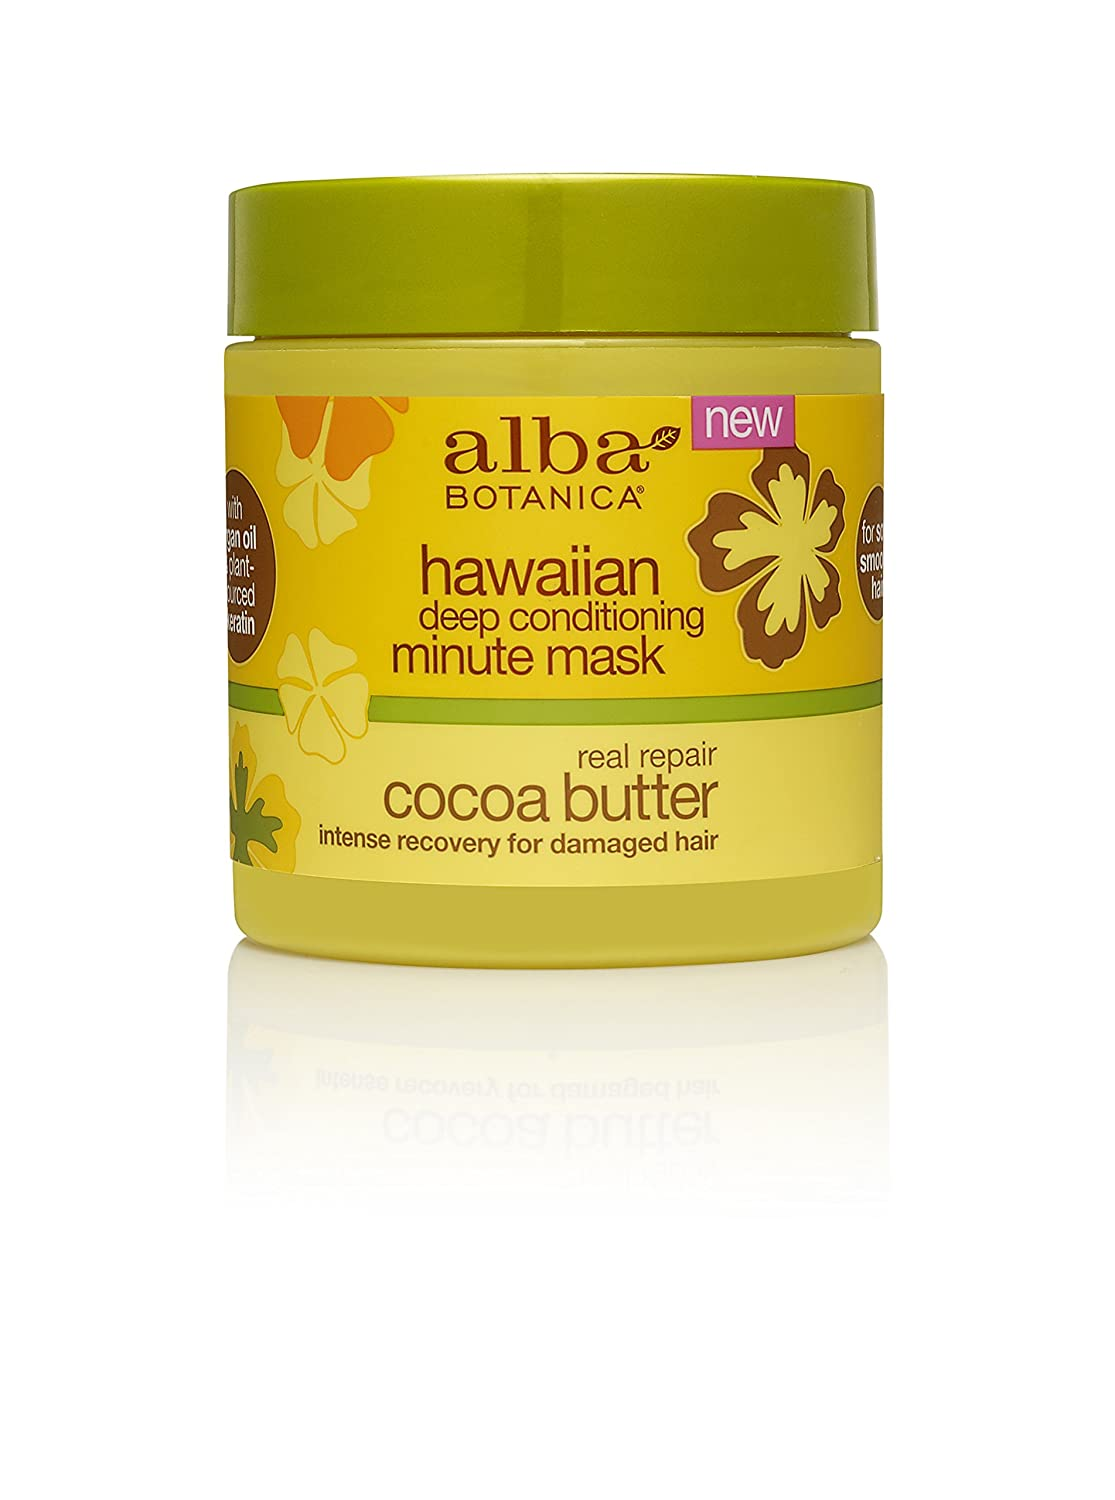 Alba Botanica Hawaiian Hair Care Real Repair Cocoa Butter Deep Conditioning Minute Mask, 5.5 Ounce LB0327